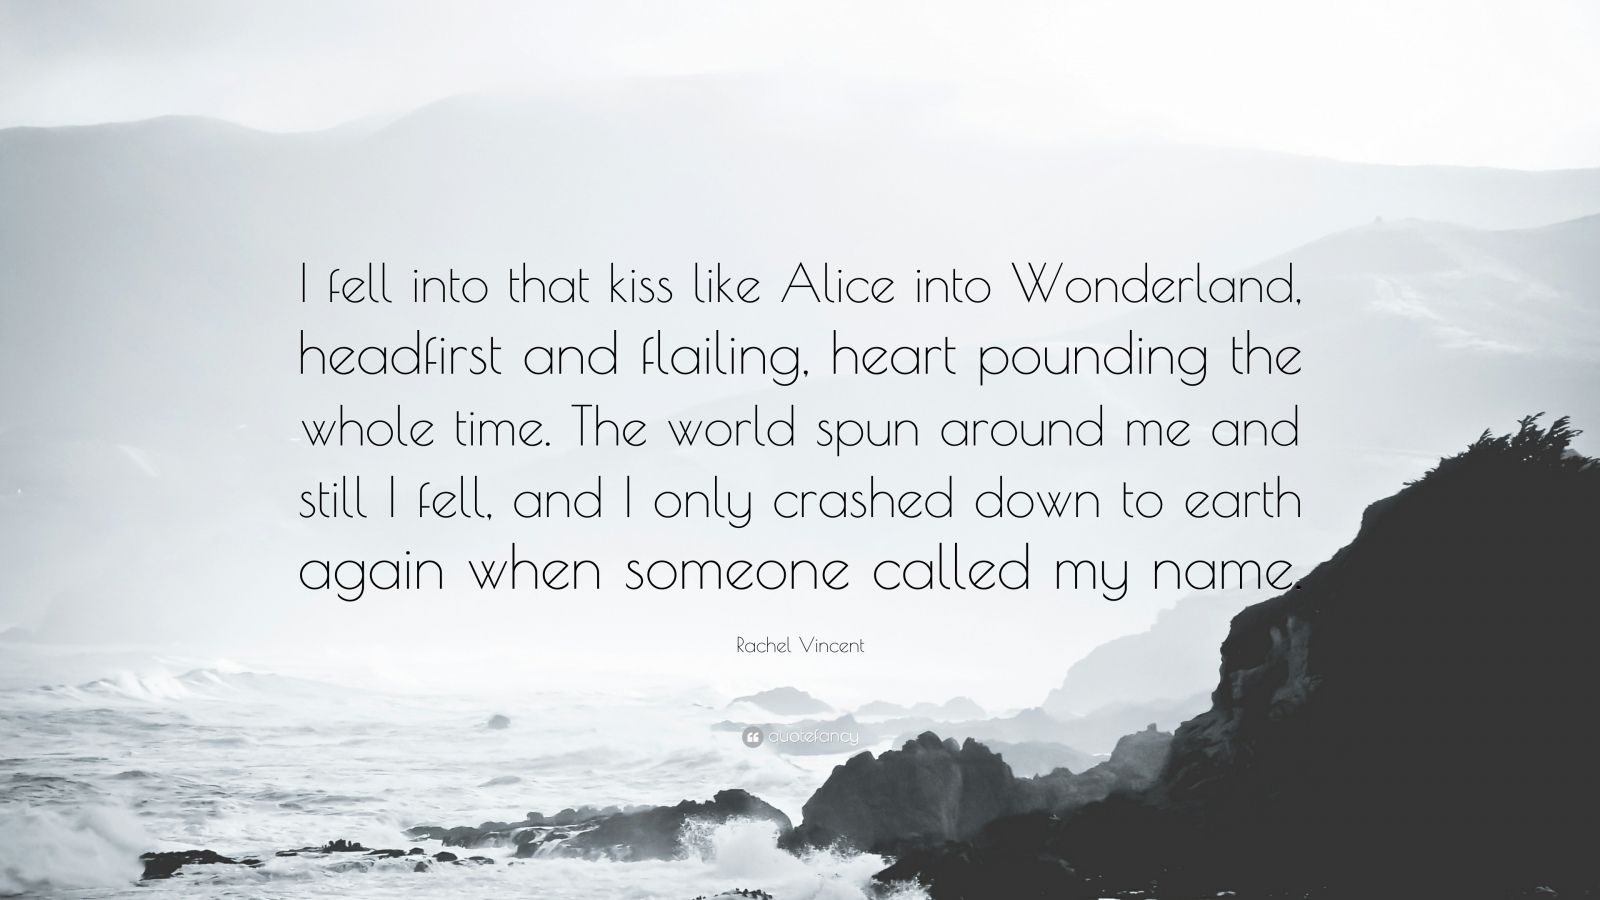 "Rachel Vincent Quote: ""I fell into that kiss like Alice into Wonderland, headfirst and flailing, heart pounding the whole time. The world spun around me and still I fell, and I only crashed down to earth again when someone called my name."""